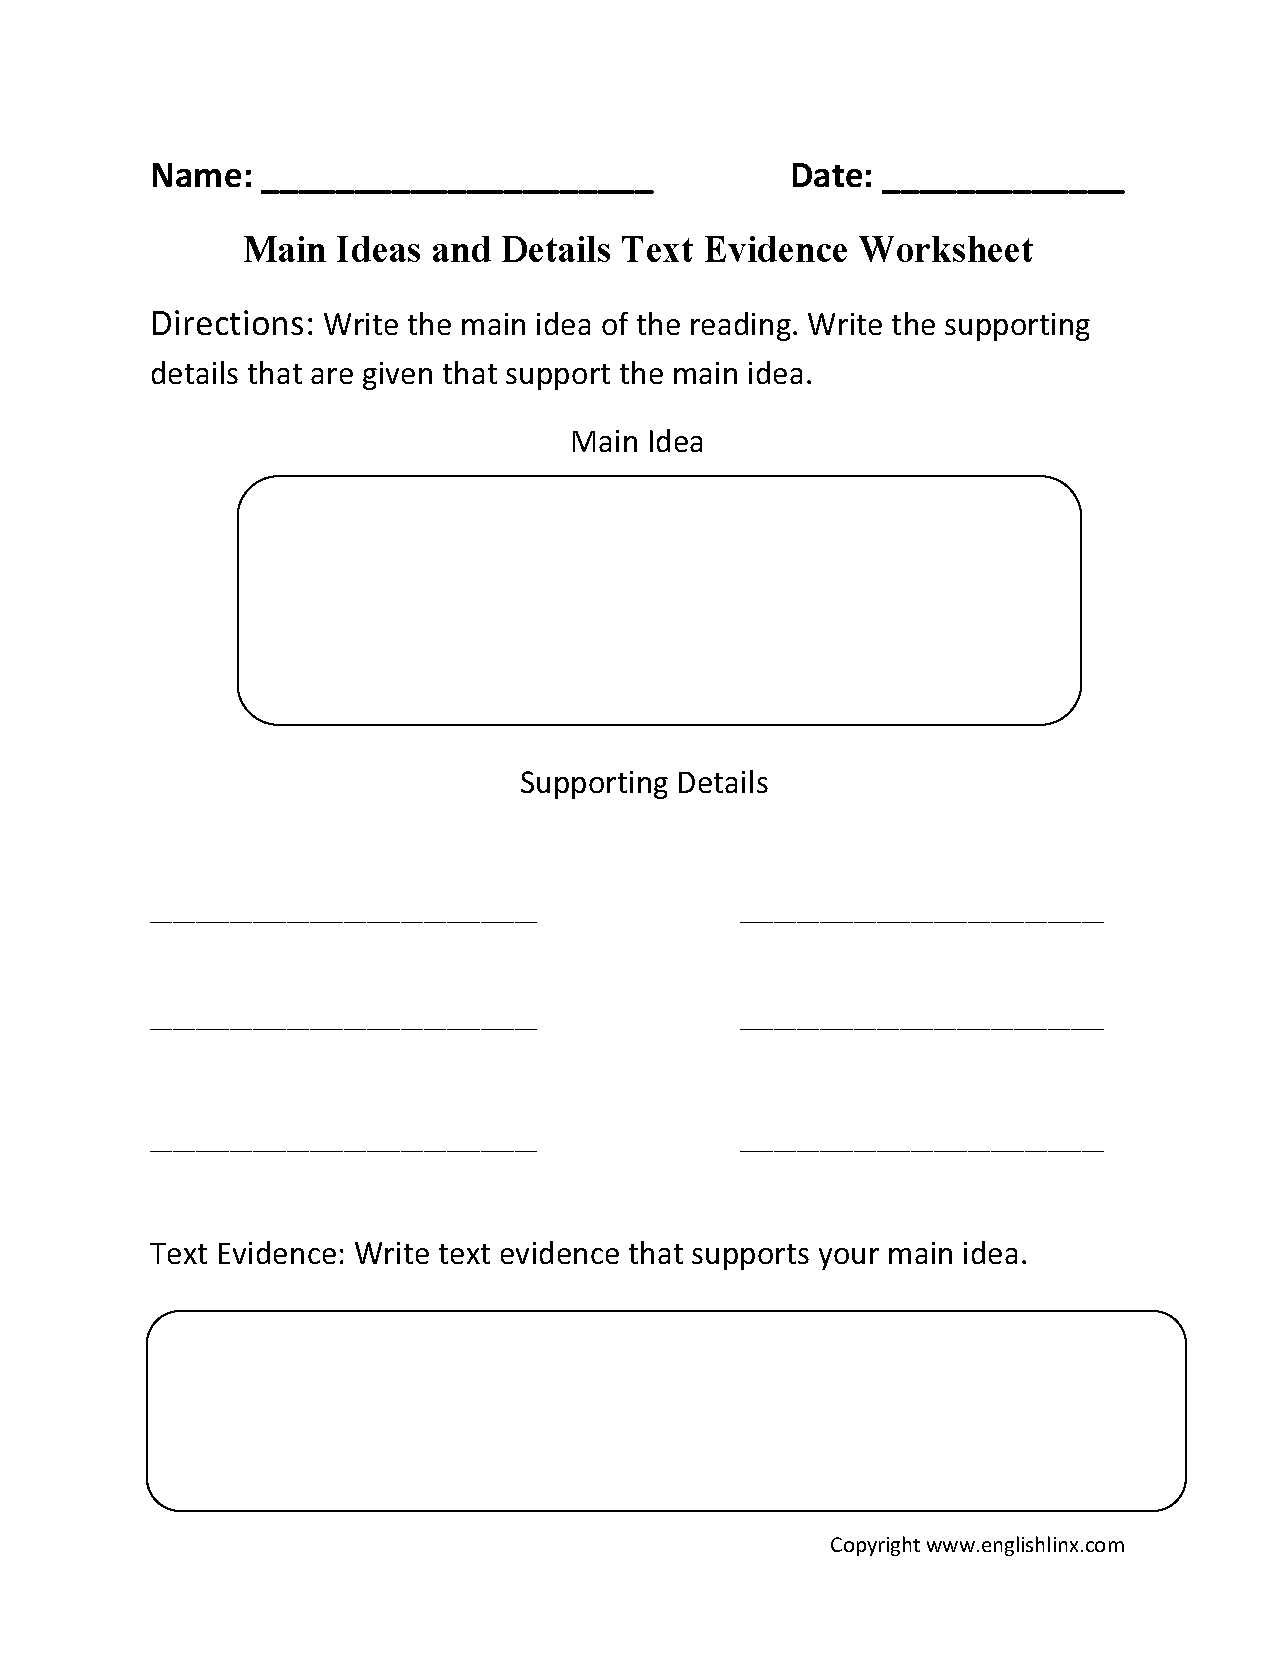 Inferences Worksheet 1 together with Main Idea Worksheets Englishlinx Board